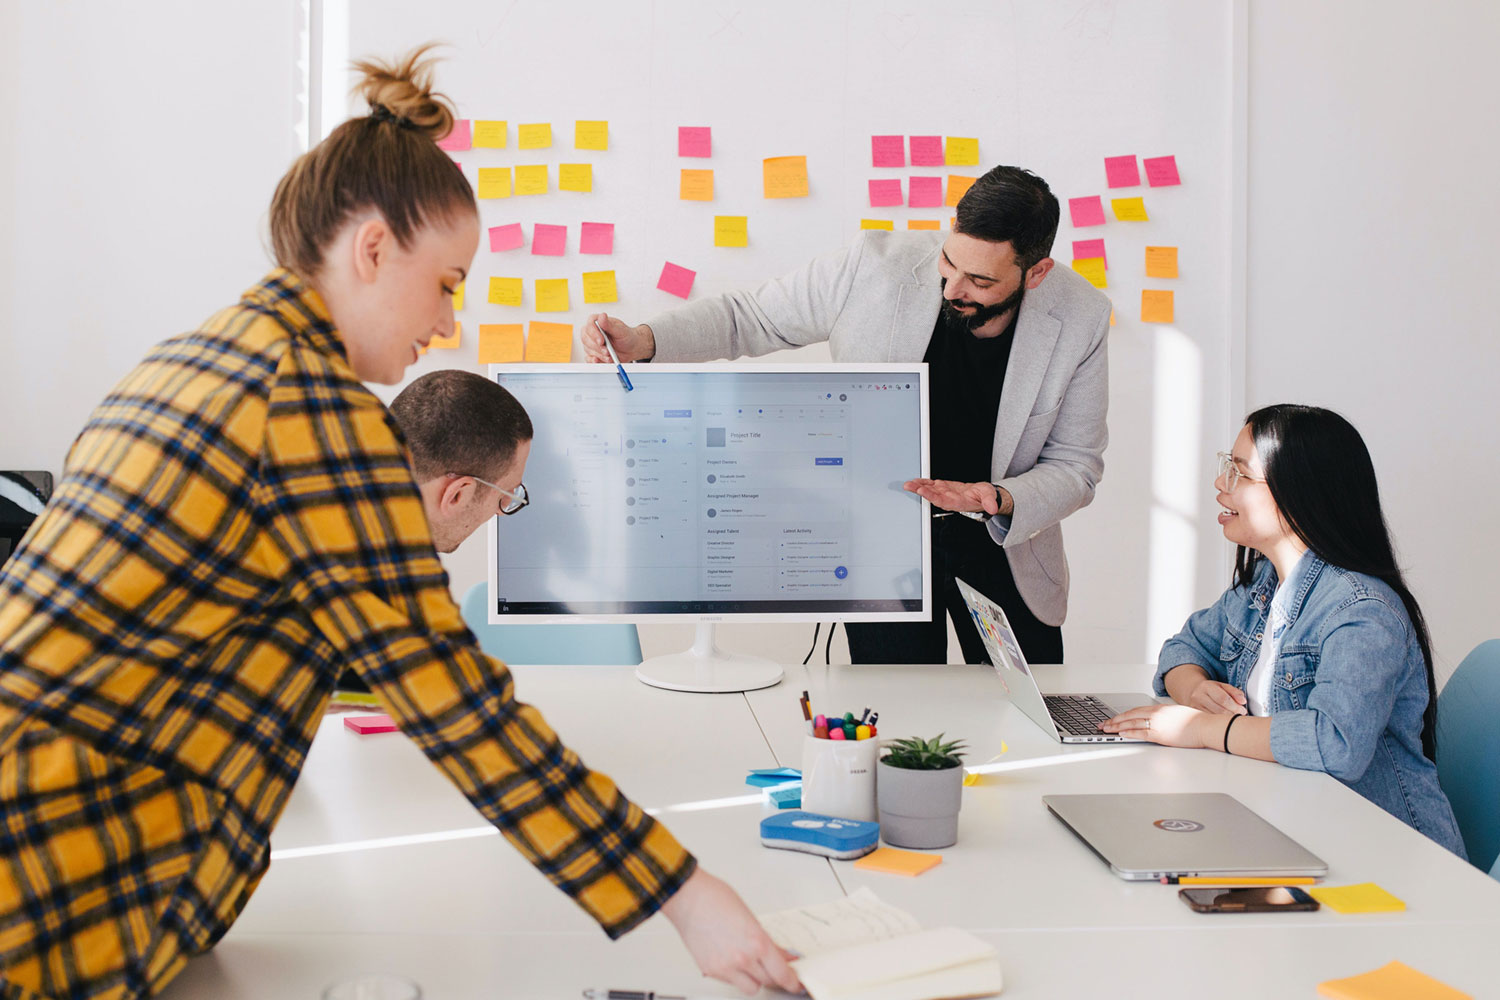 group of office workers at conference table. Post-its cover the wall in behind them